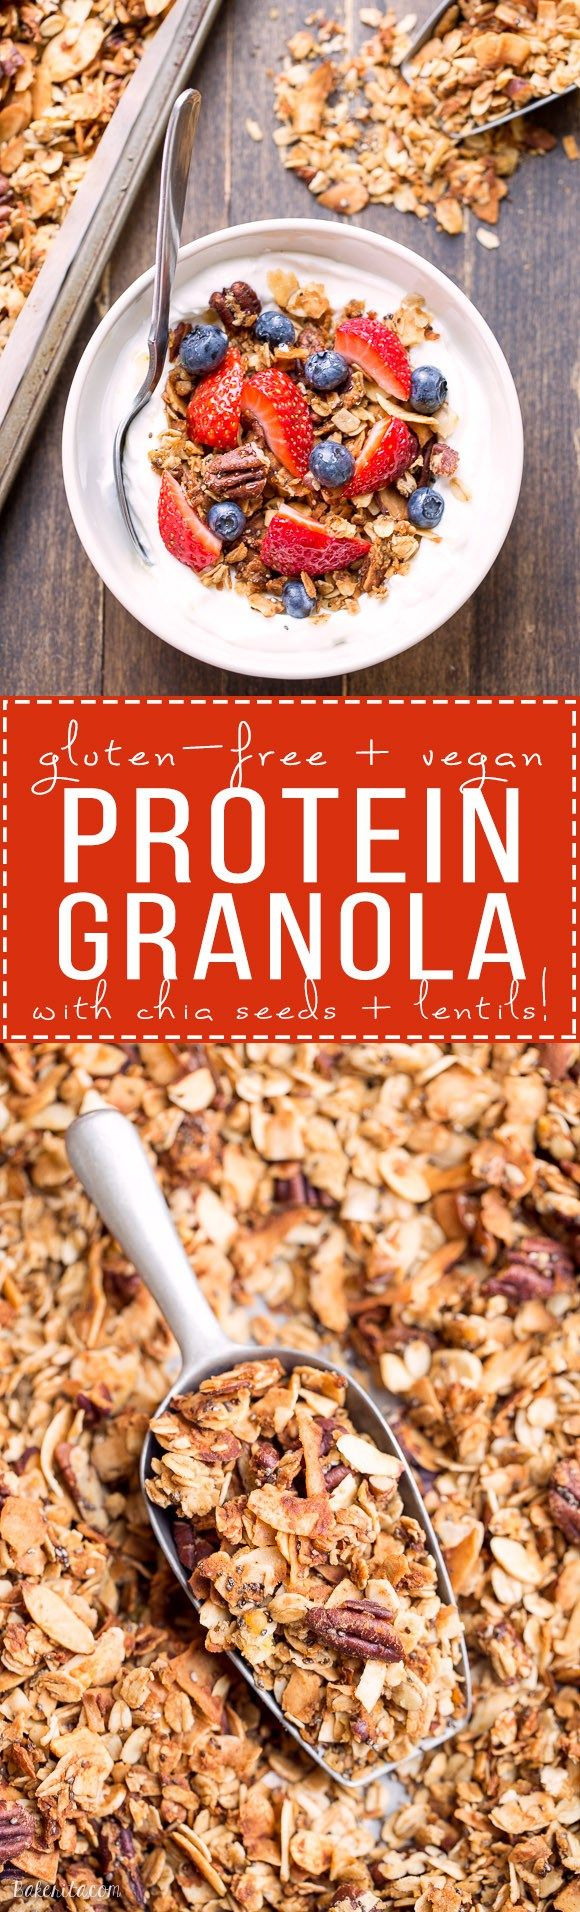 This crunchy Protein Granola gets a major dose of protein & fiber from a secret ingredient - lentils! This gluten-free & vegan granola is a delicious and filling breakfast or snack. #LetsLentil